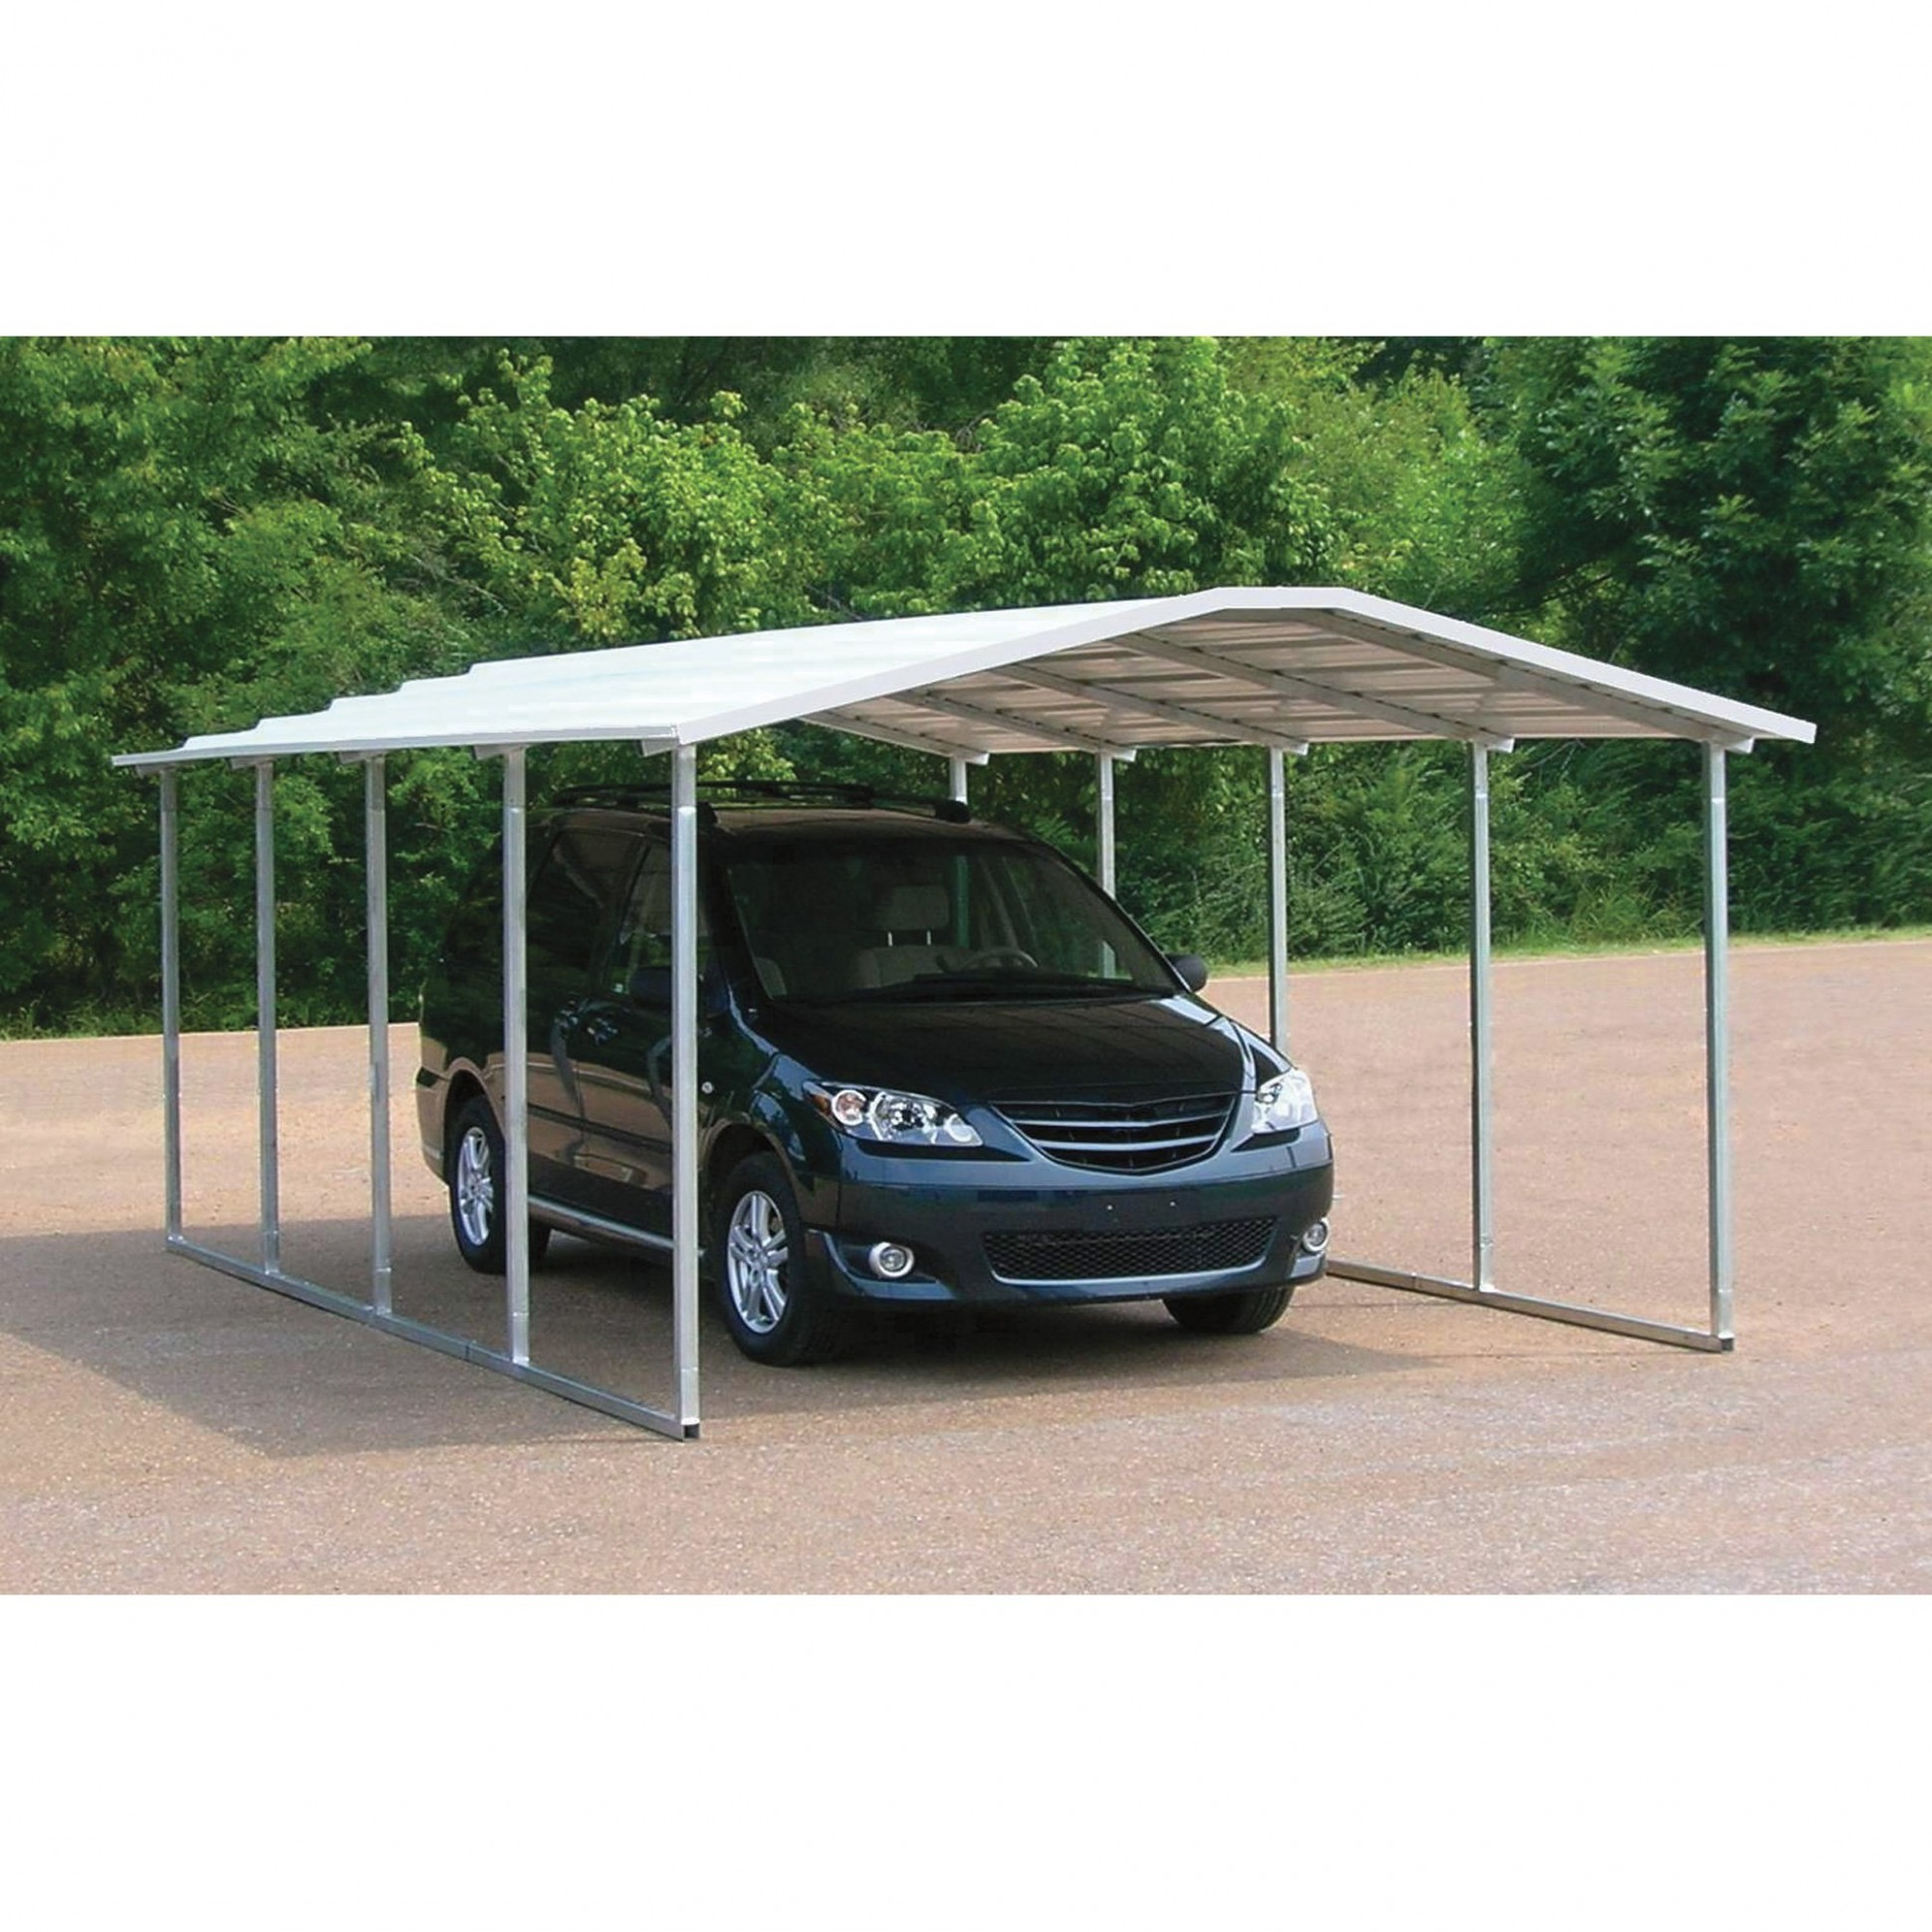 6 Common Misconceptions About Steel Frame Carport Kits | steel frame carport kits